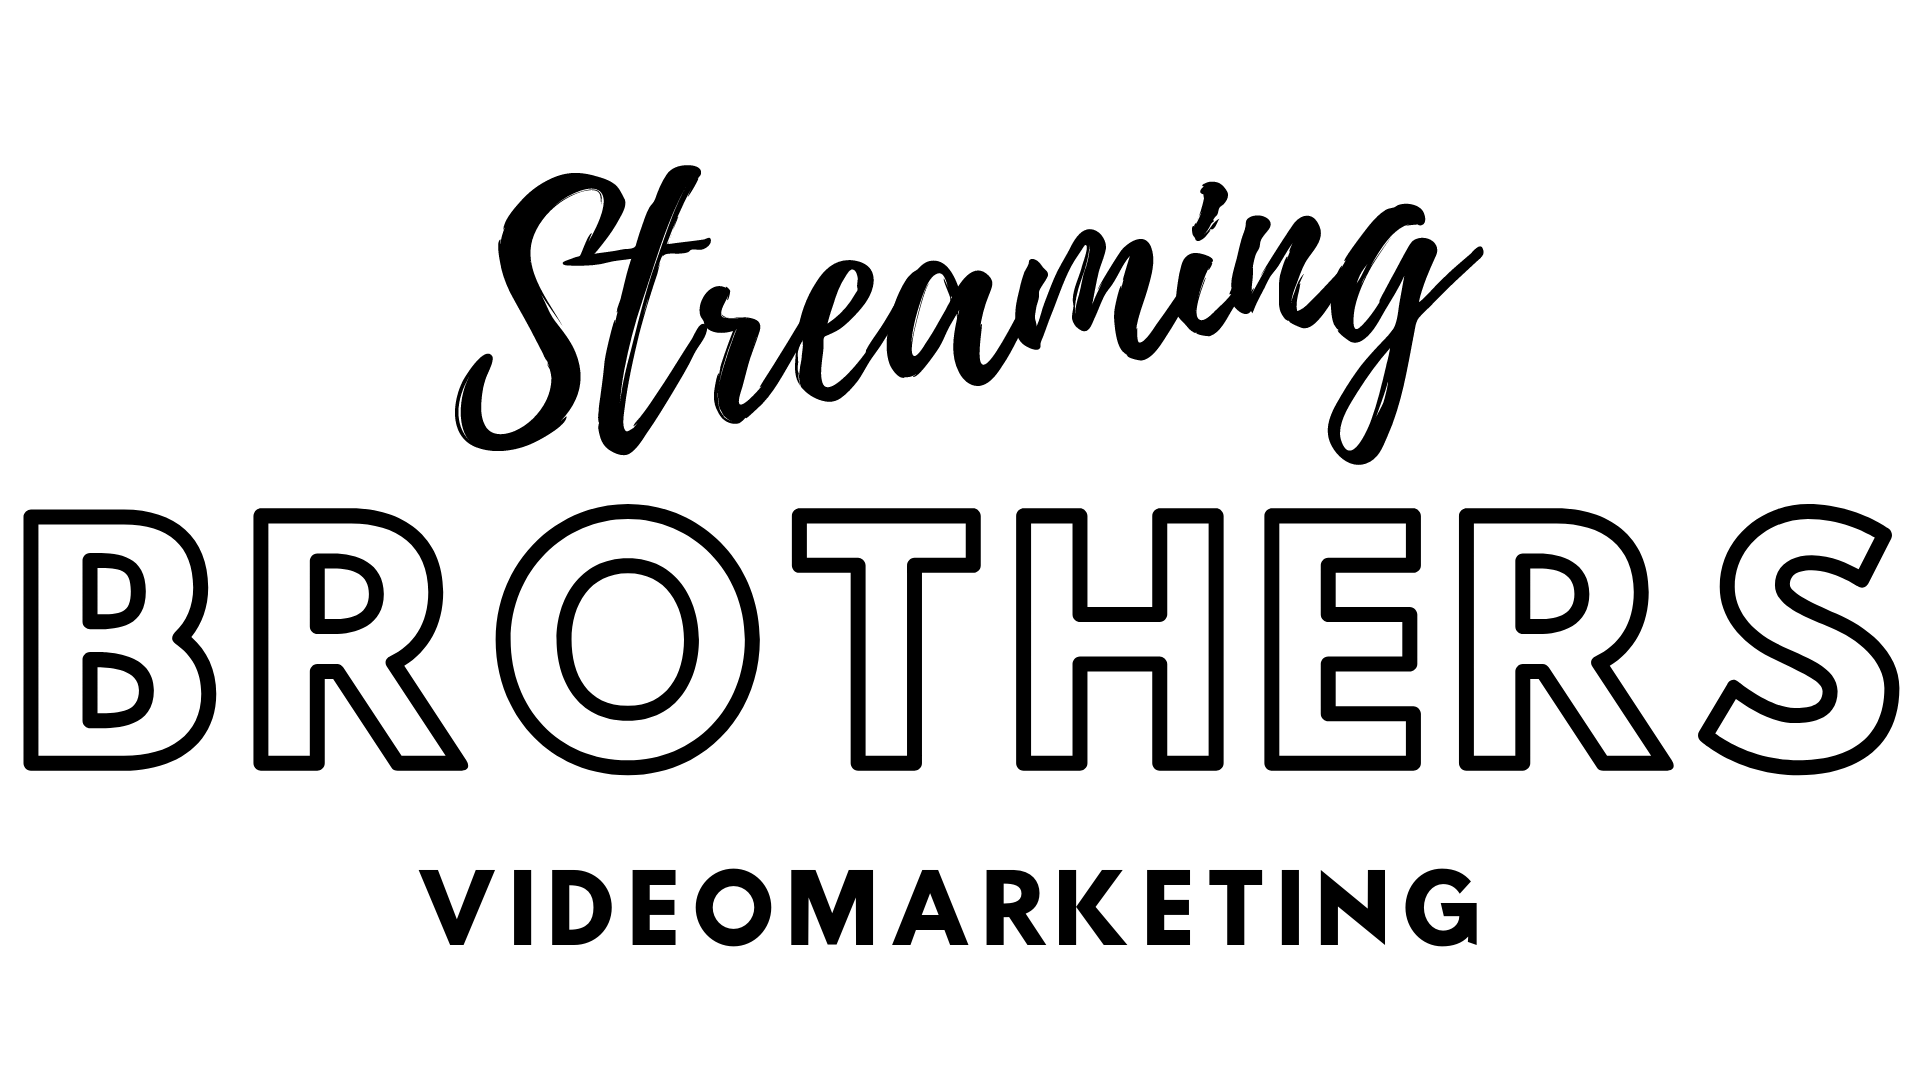 Streaming Brothers